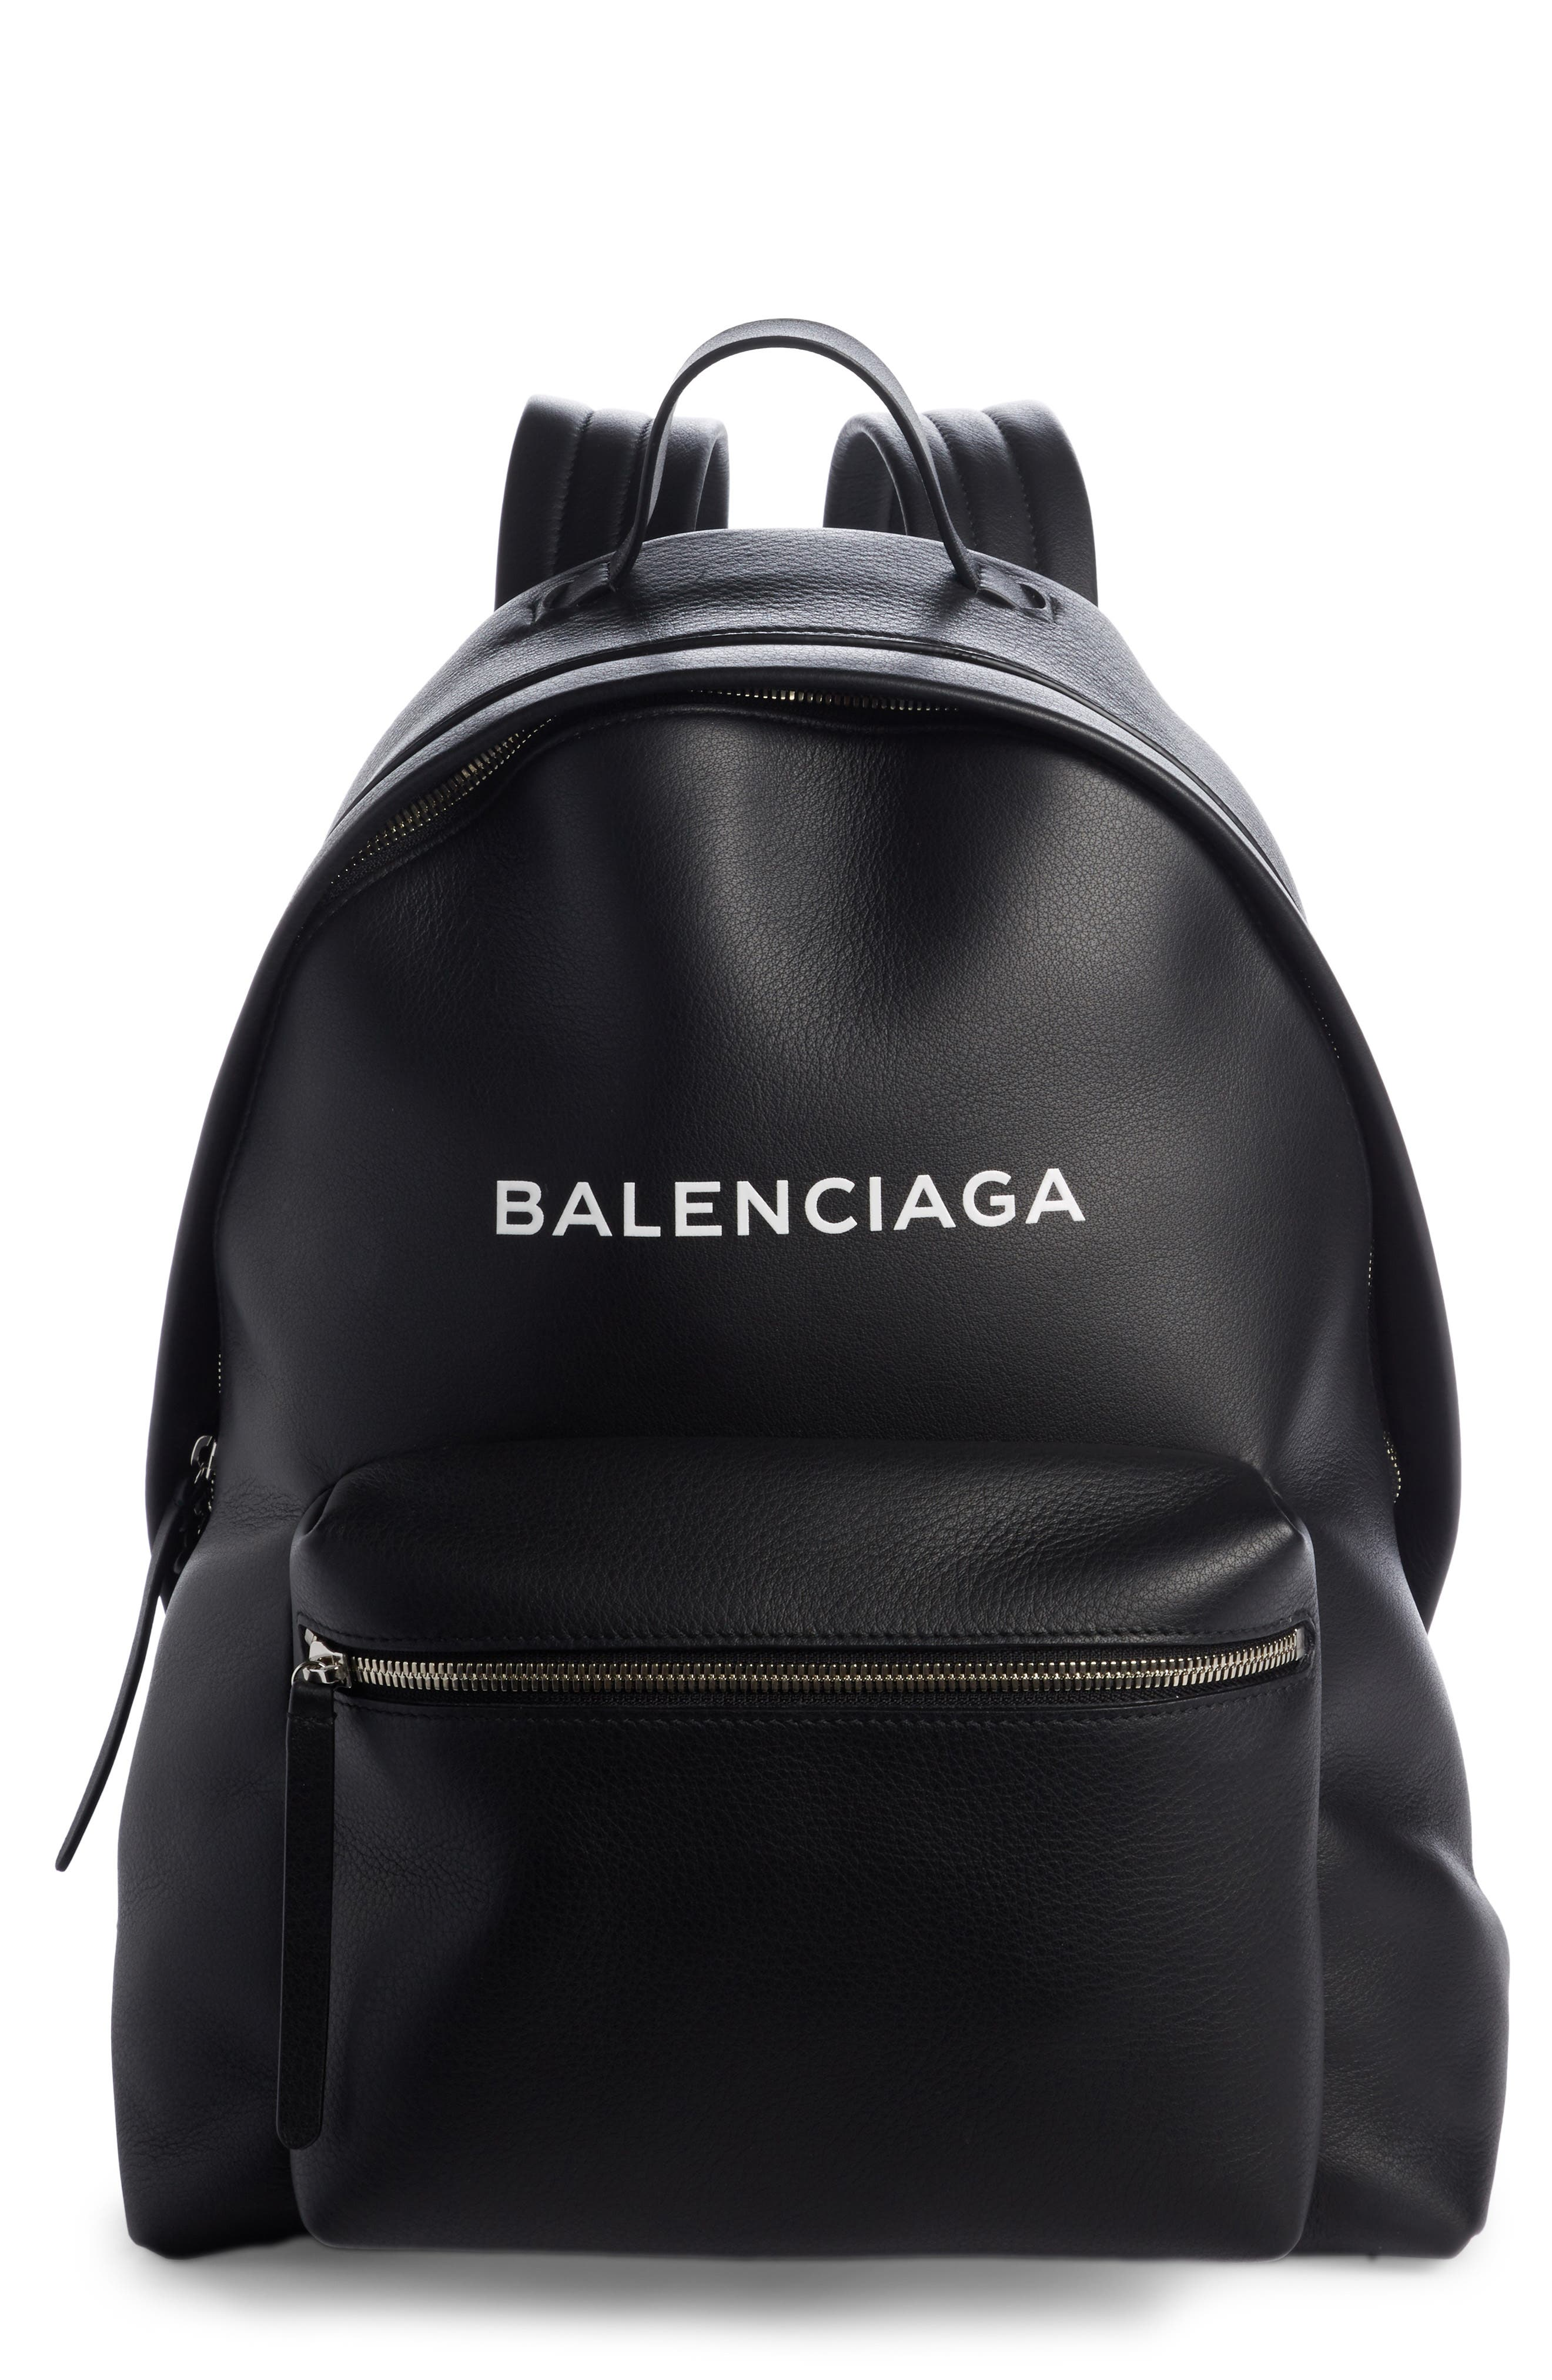 Everyday Calfskin Backpack,                             Main thumbnail 1, color,                             001